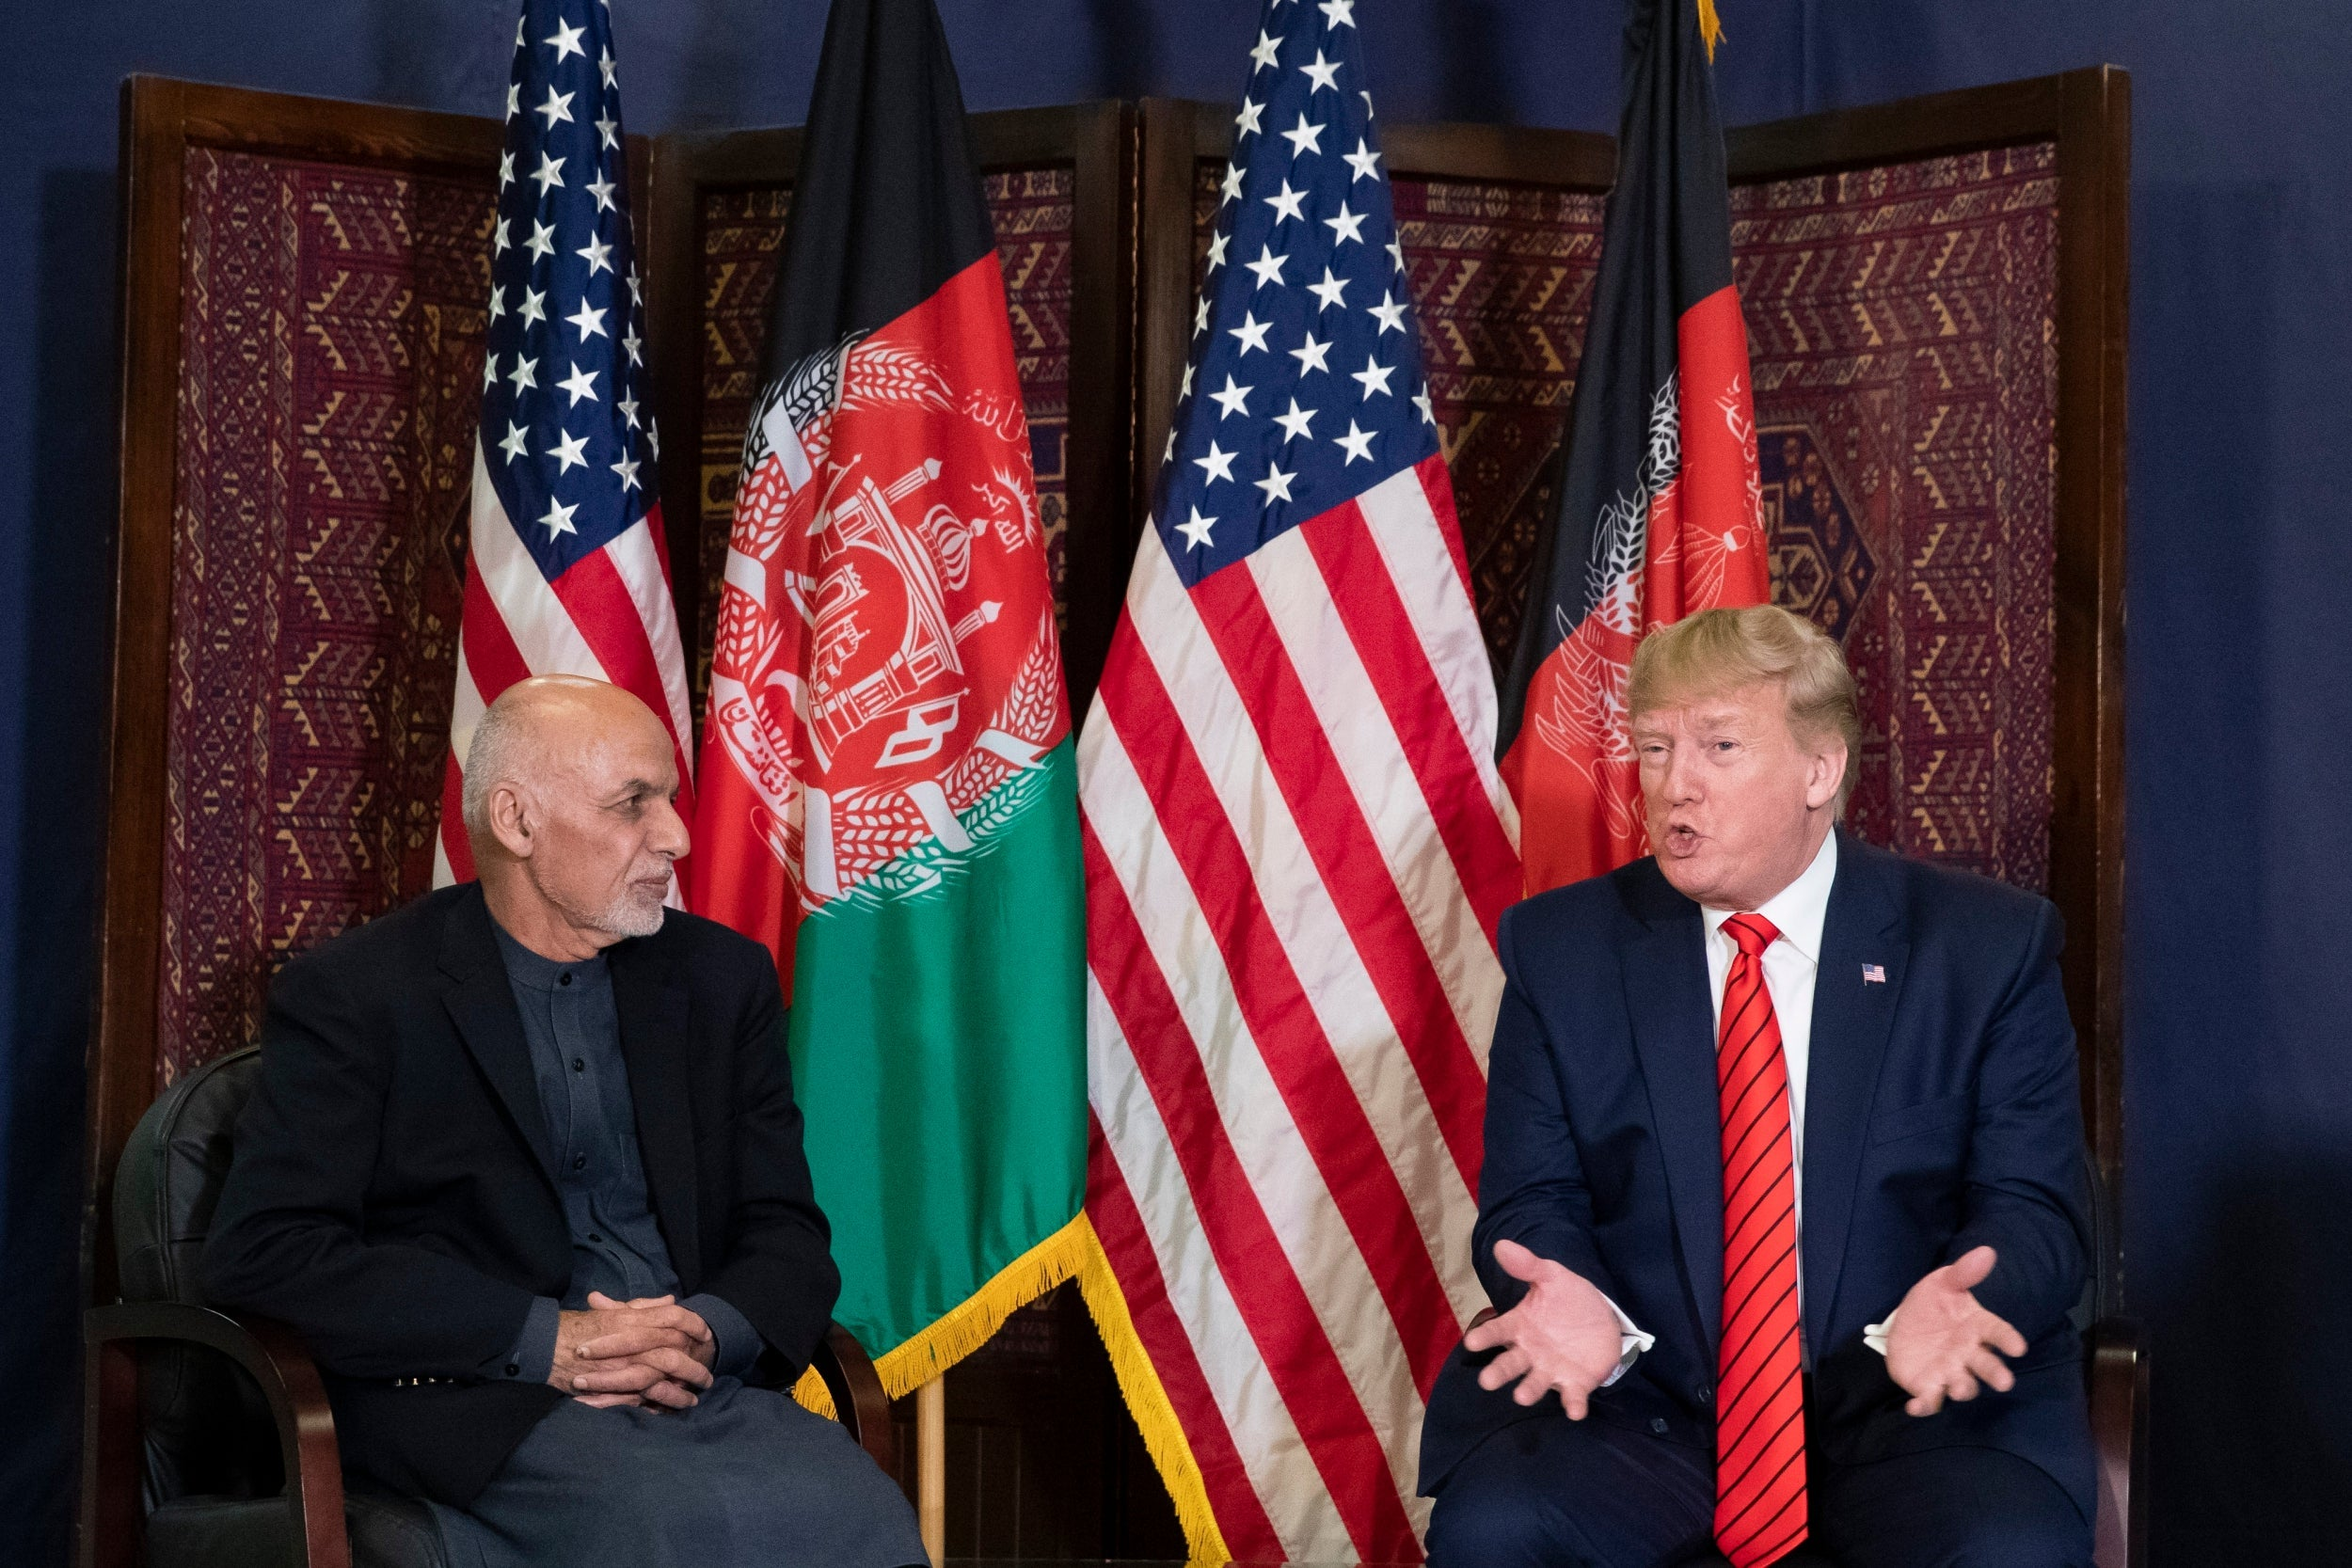 Borzou Daraghi: Donald Trump cannot claim peace with Afghanistan until the Taliban is dealt with